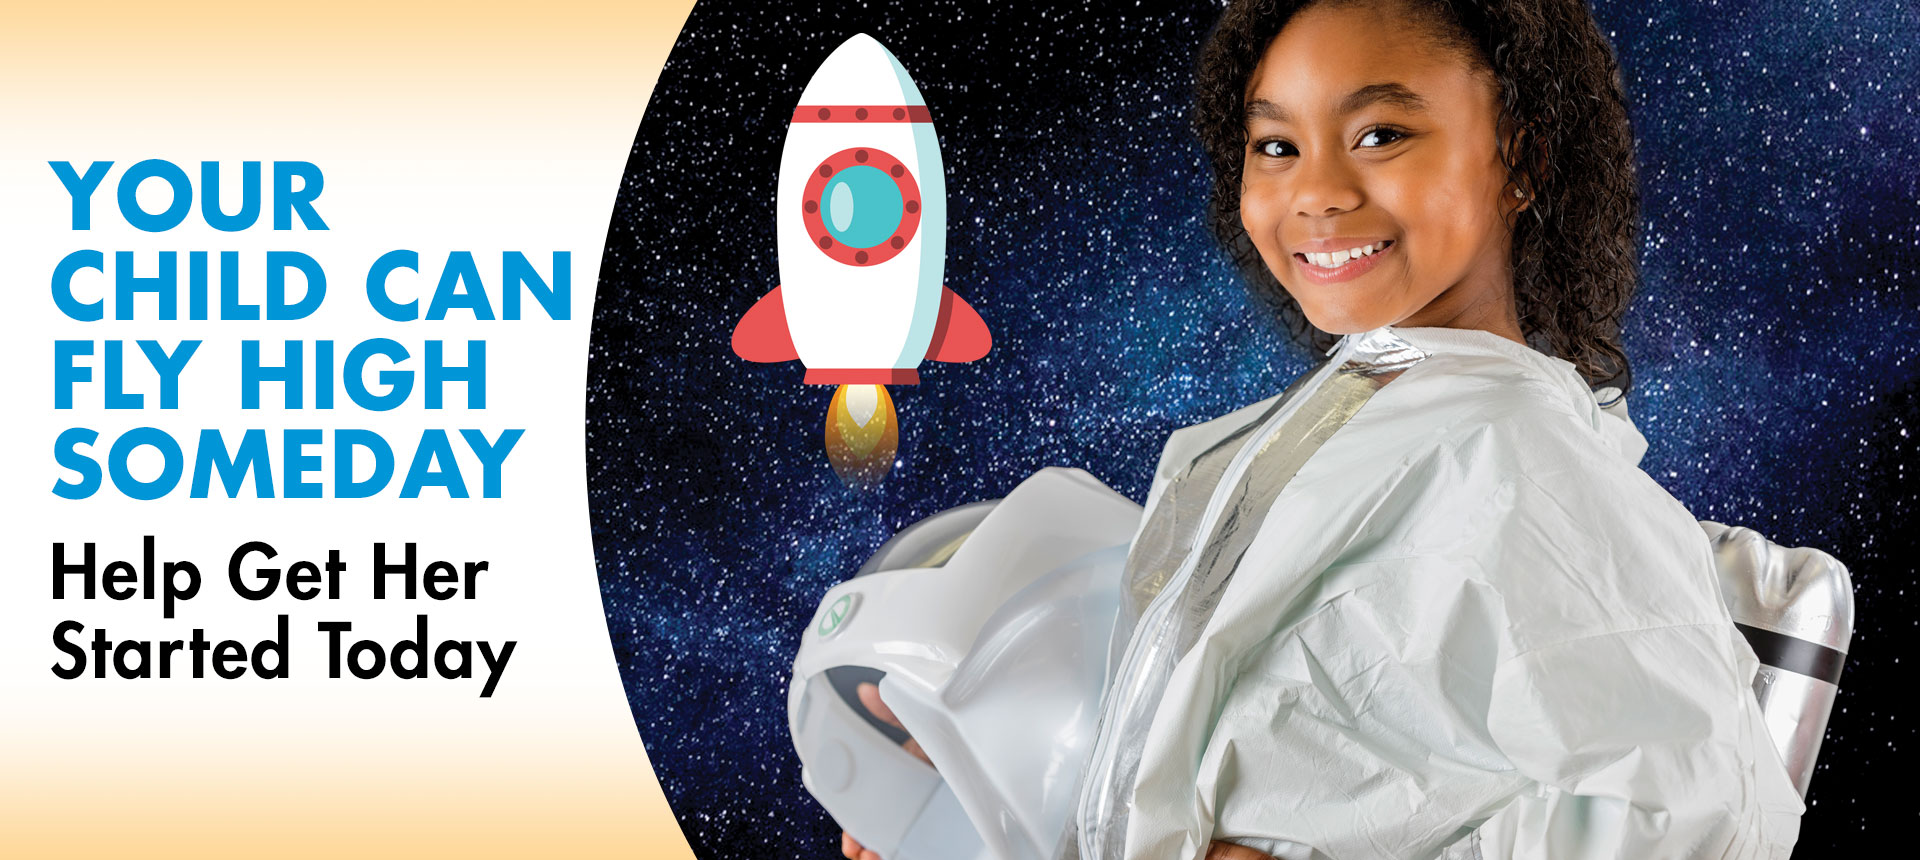 Your child can fly high someday  | Help Get her started today